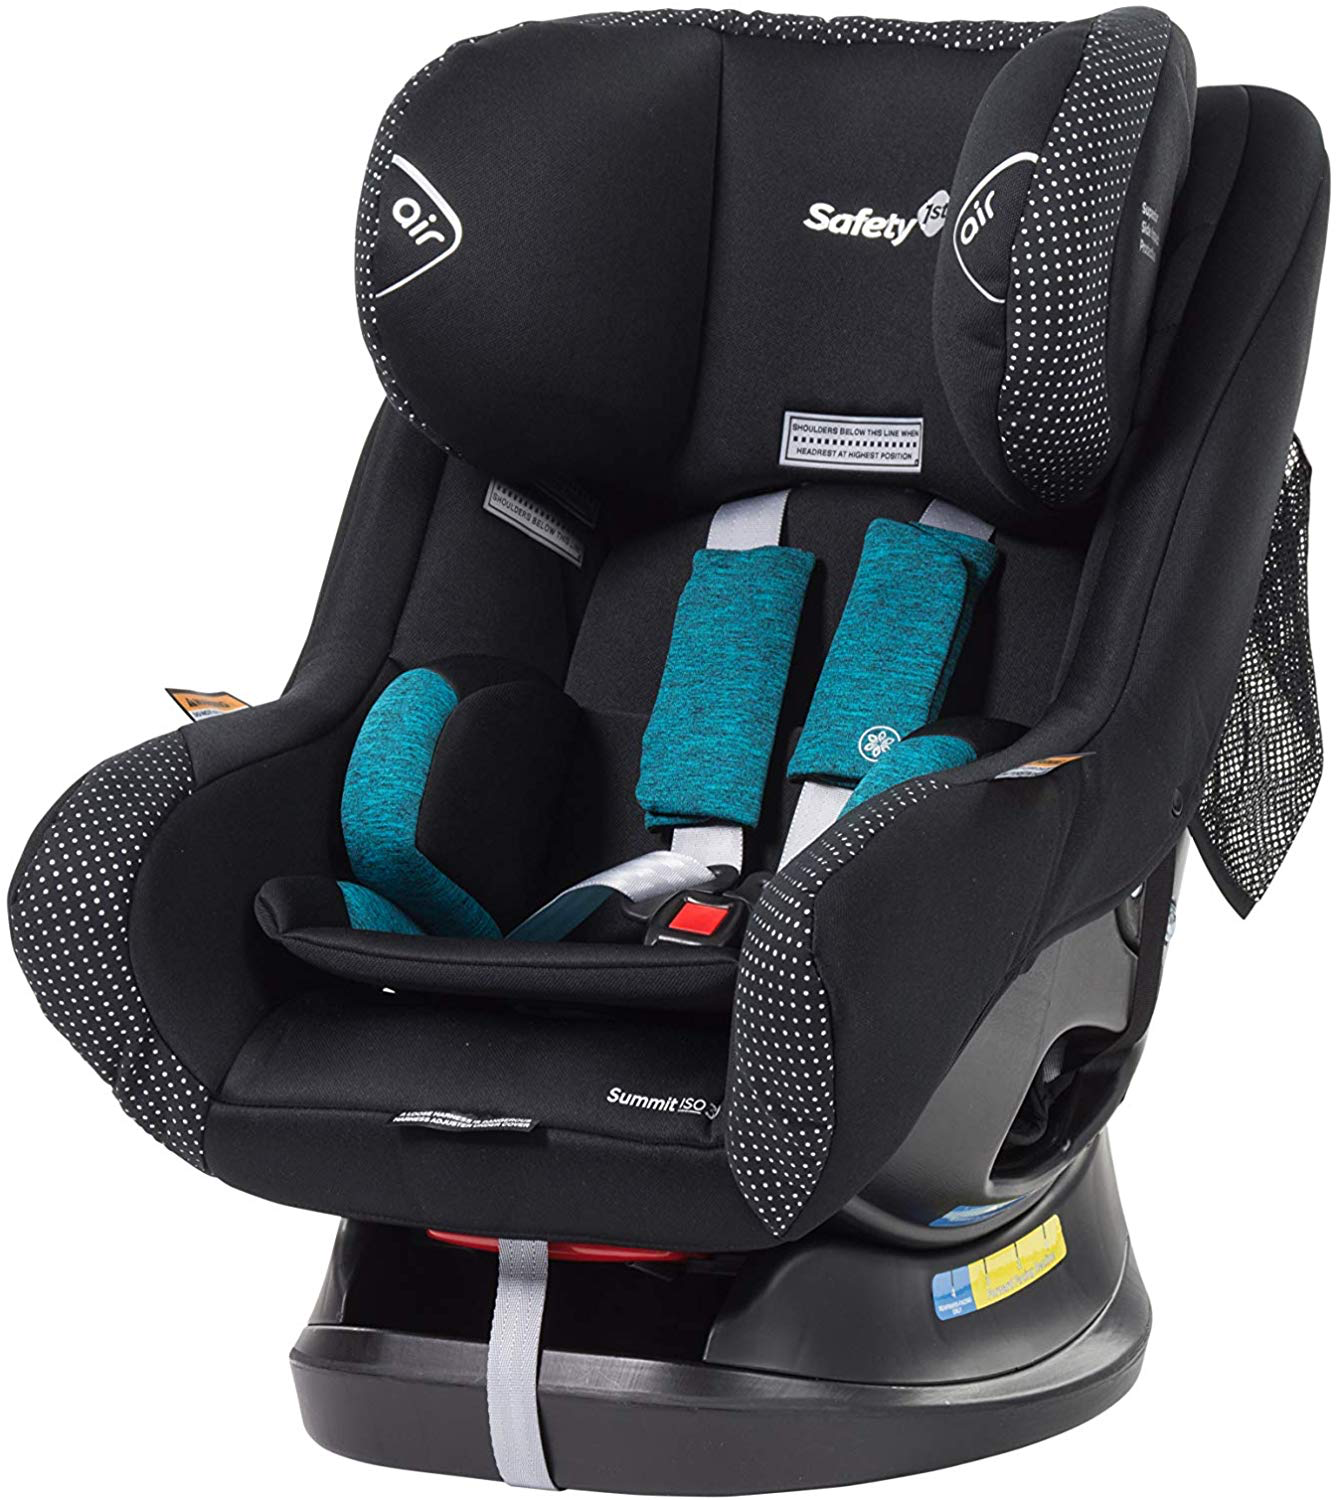 SAFETY 1ST Summit 30 Convertible Car Seat (With images